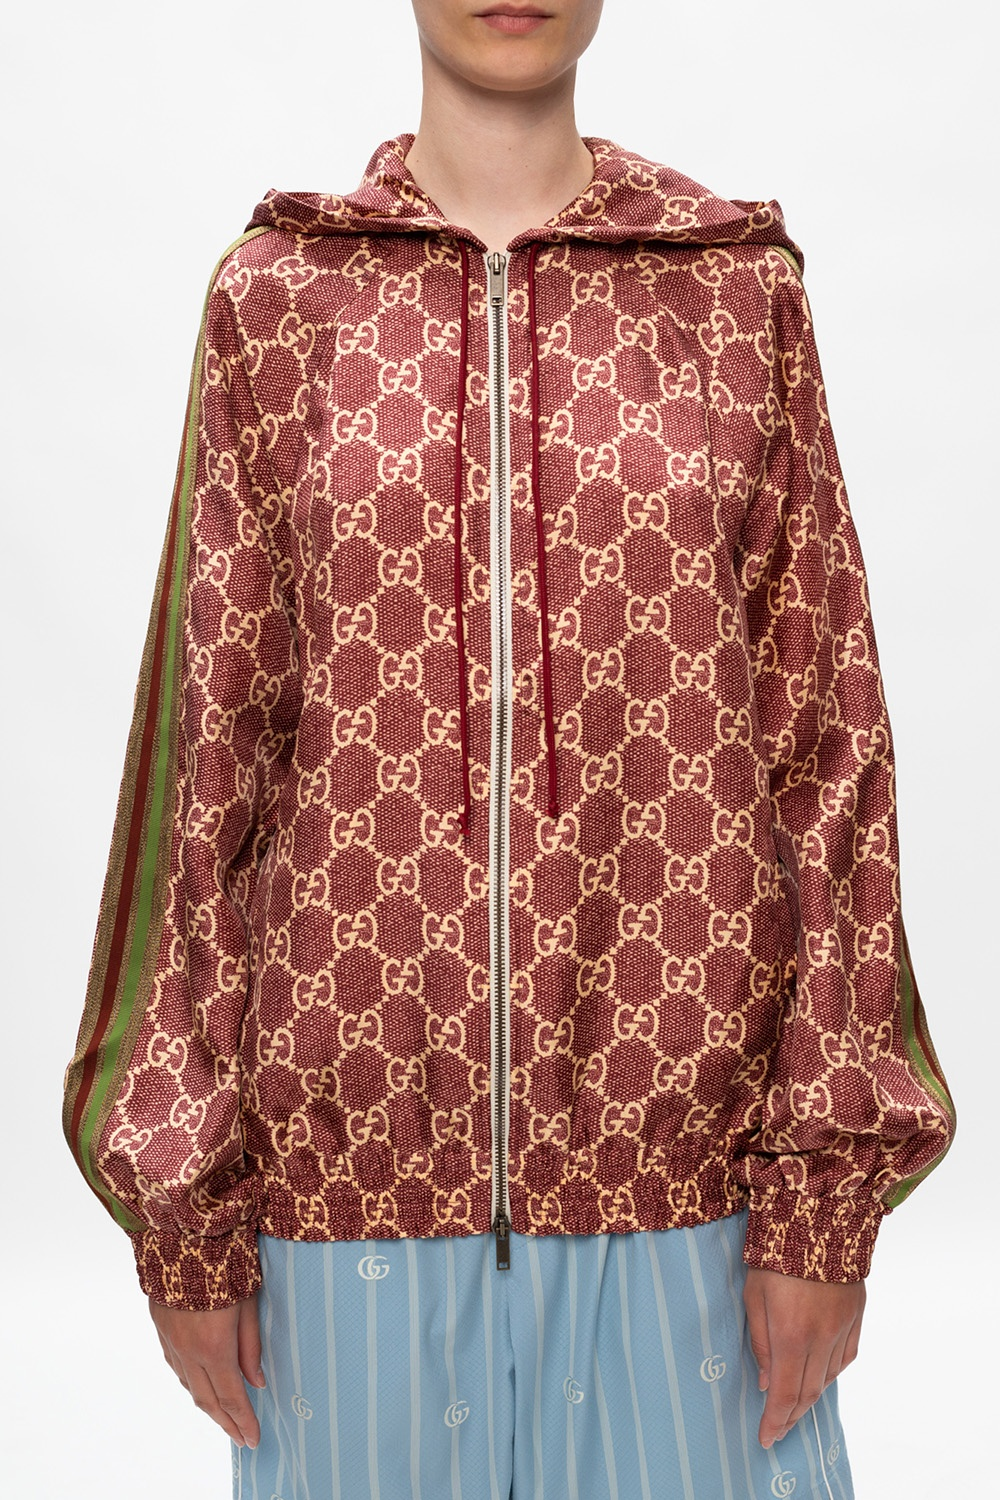 Gucci Silk jacket with logo